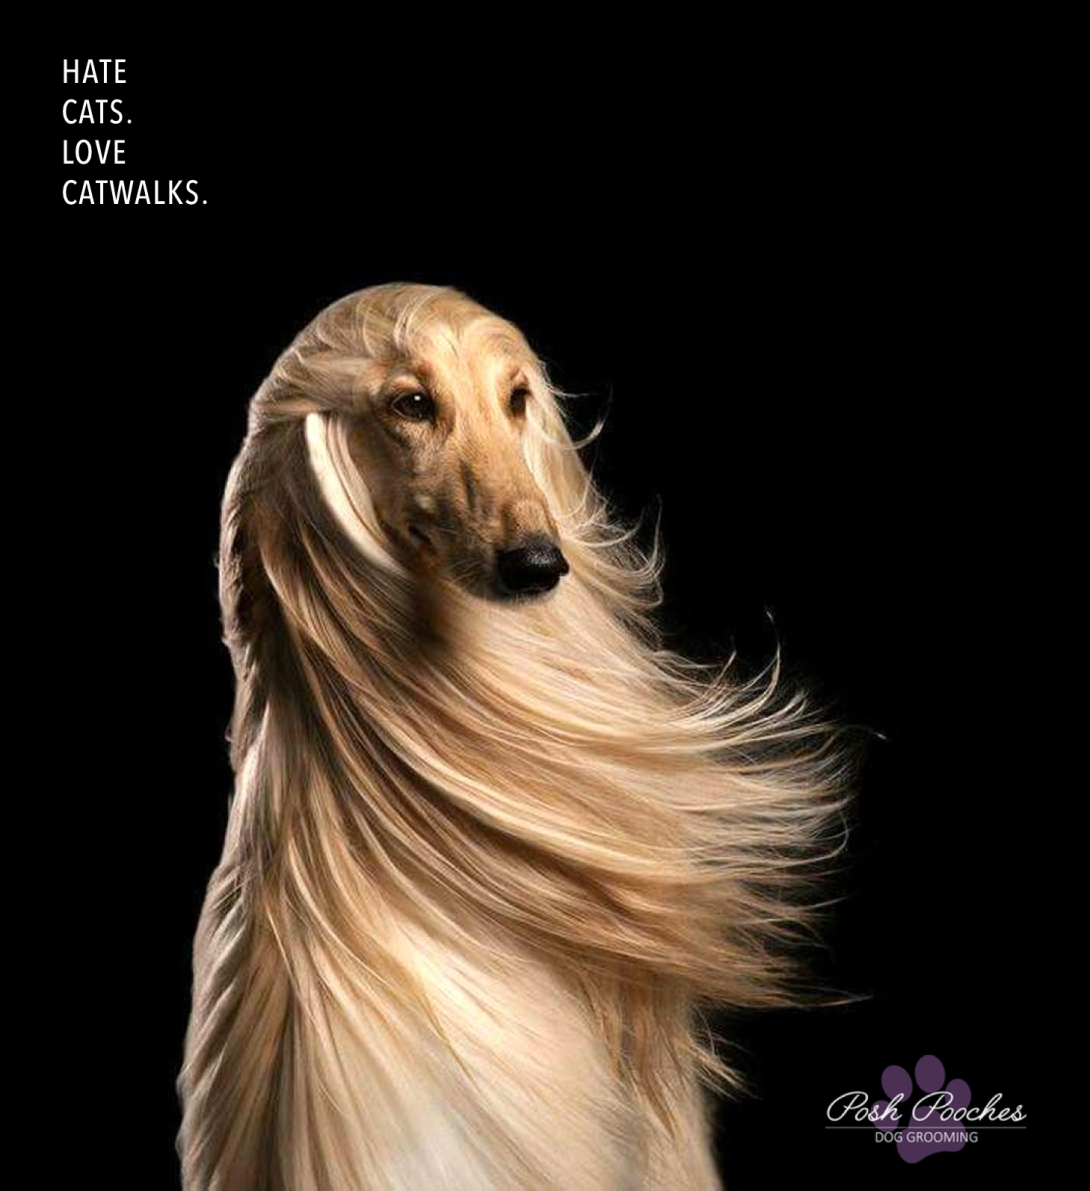 Ad concept for a pedigree dog grooming company